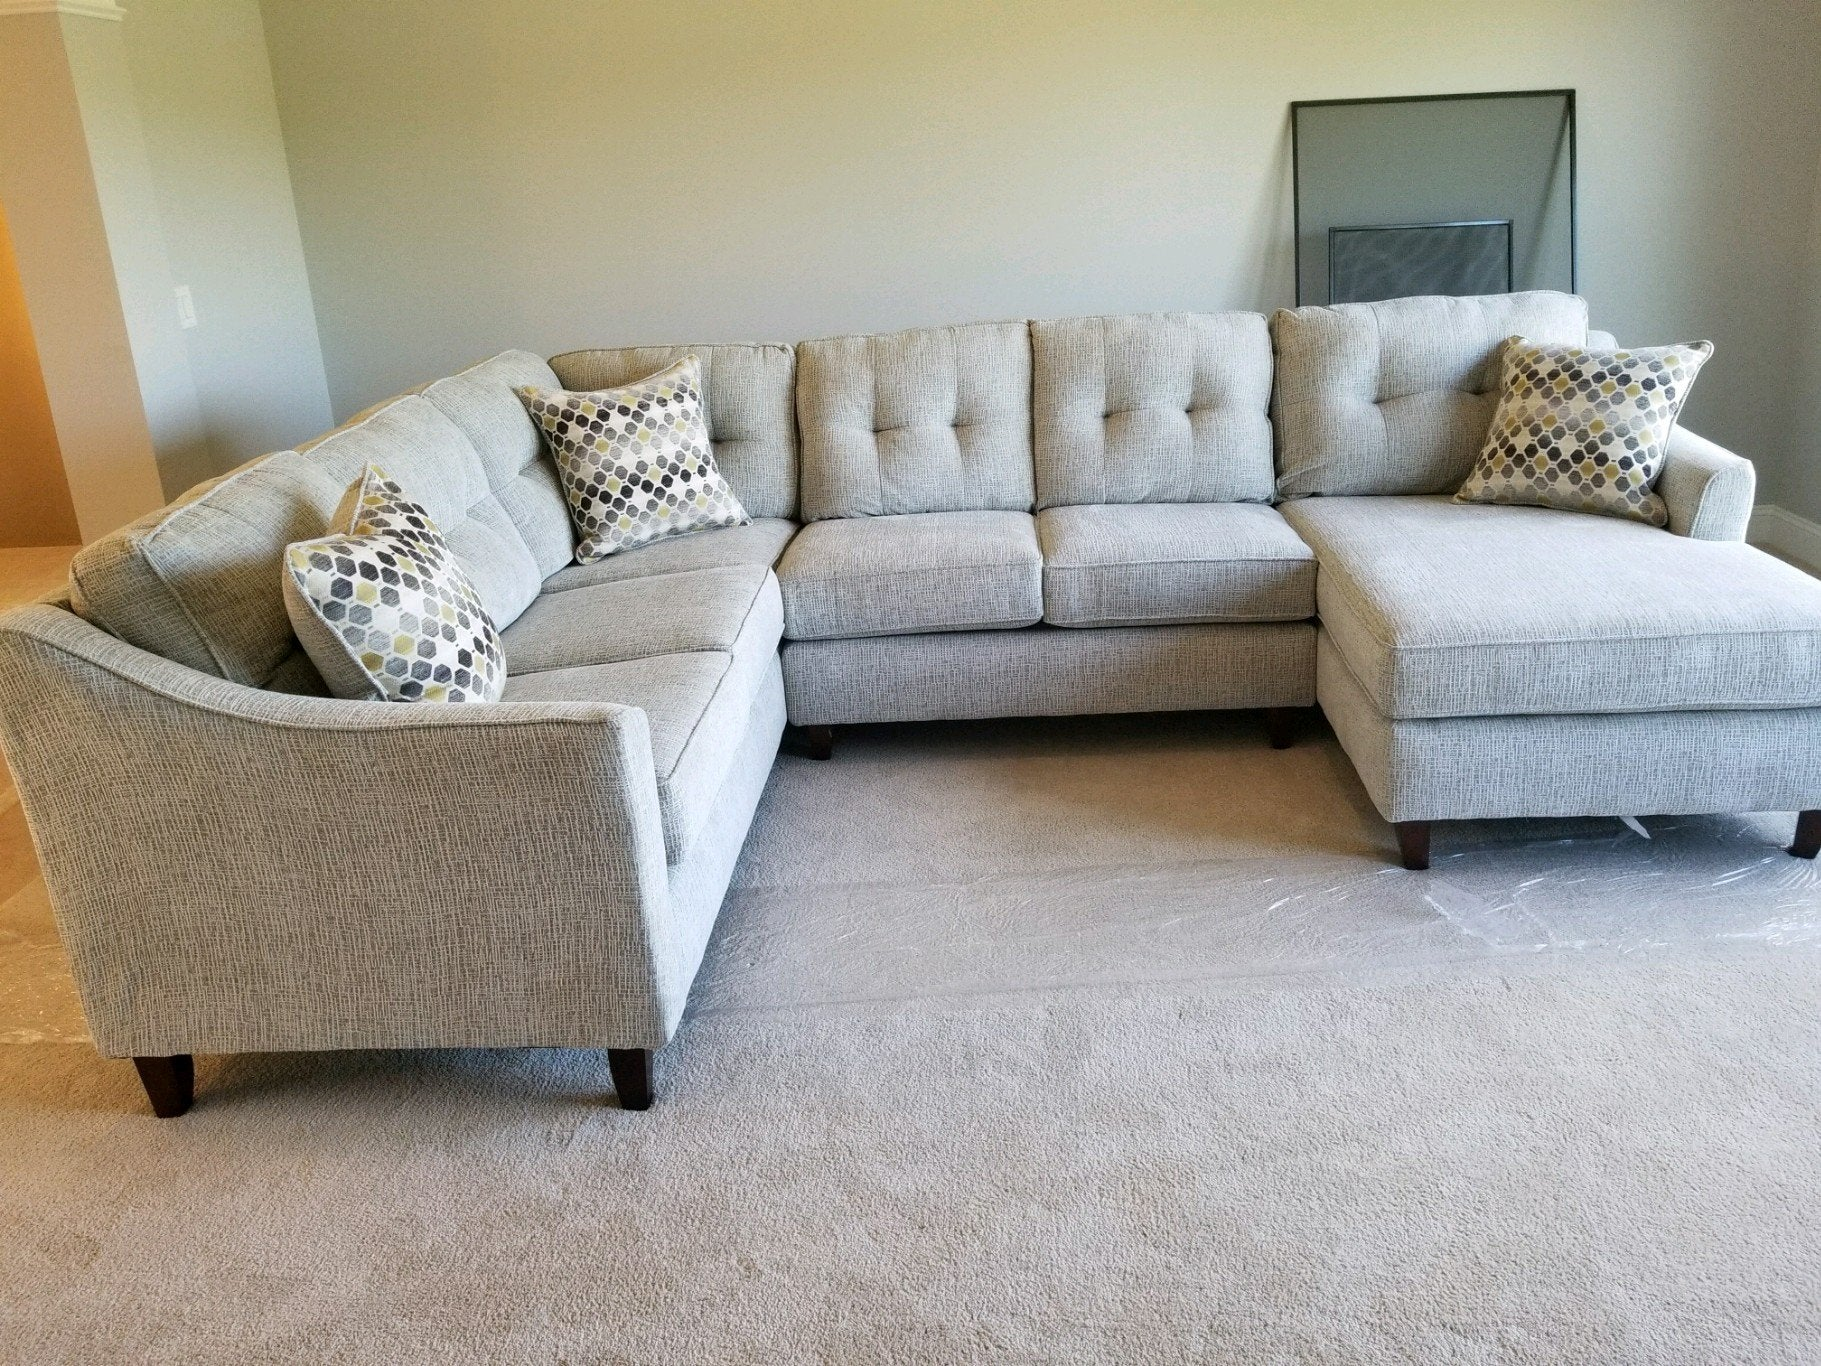 Superieur Sydney Cream Sectional Sofa Set